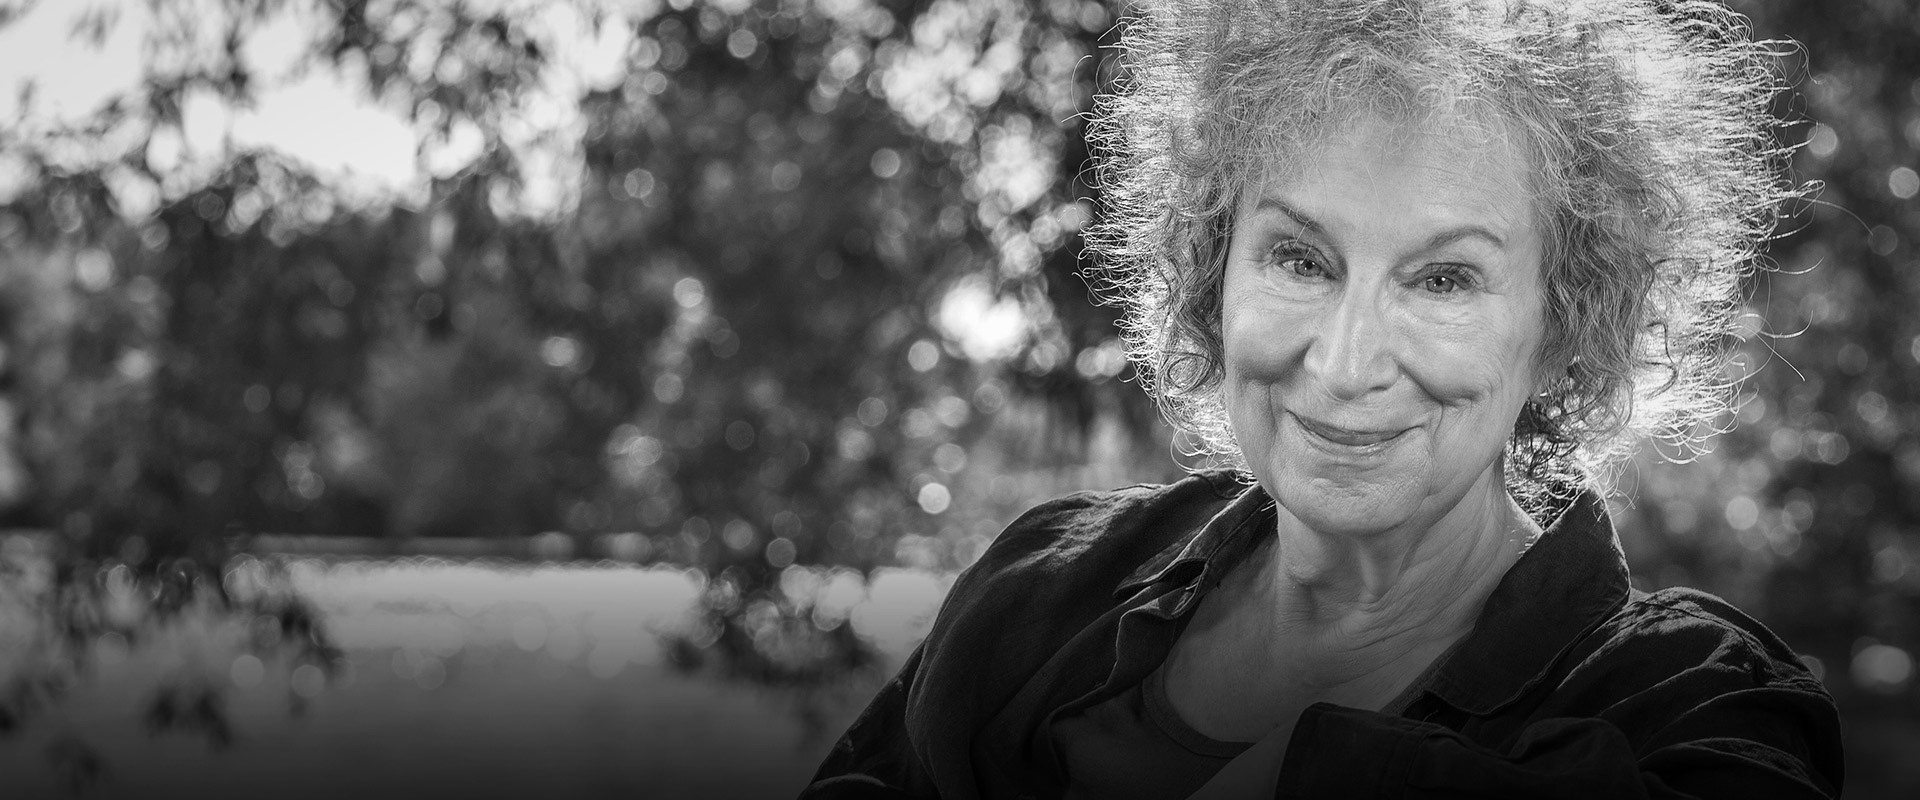 Photograph of Margaret Atwood